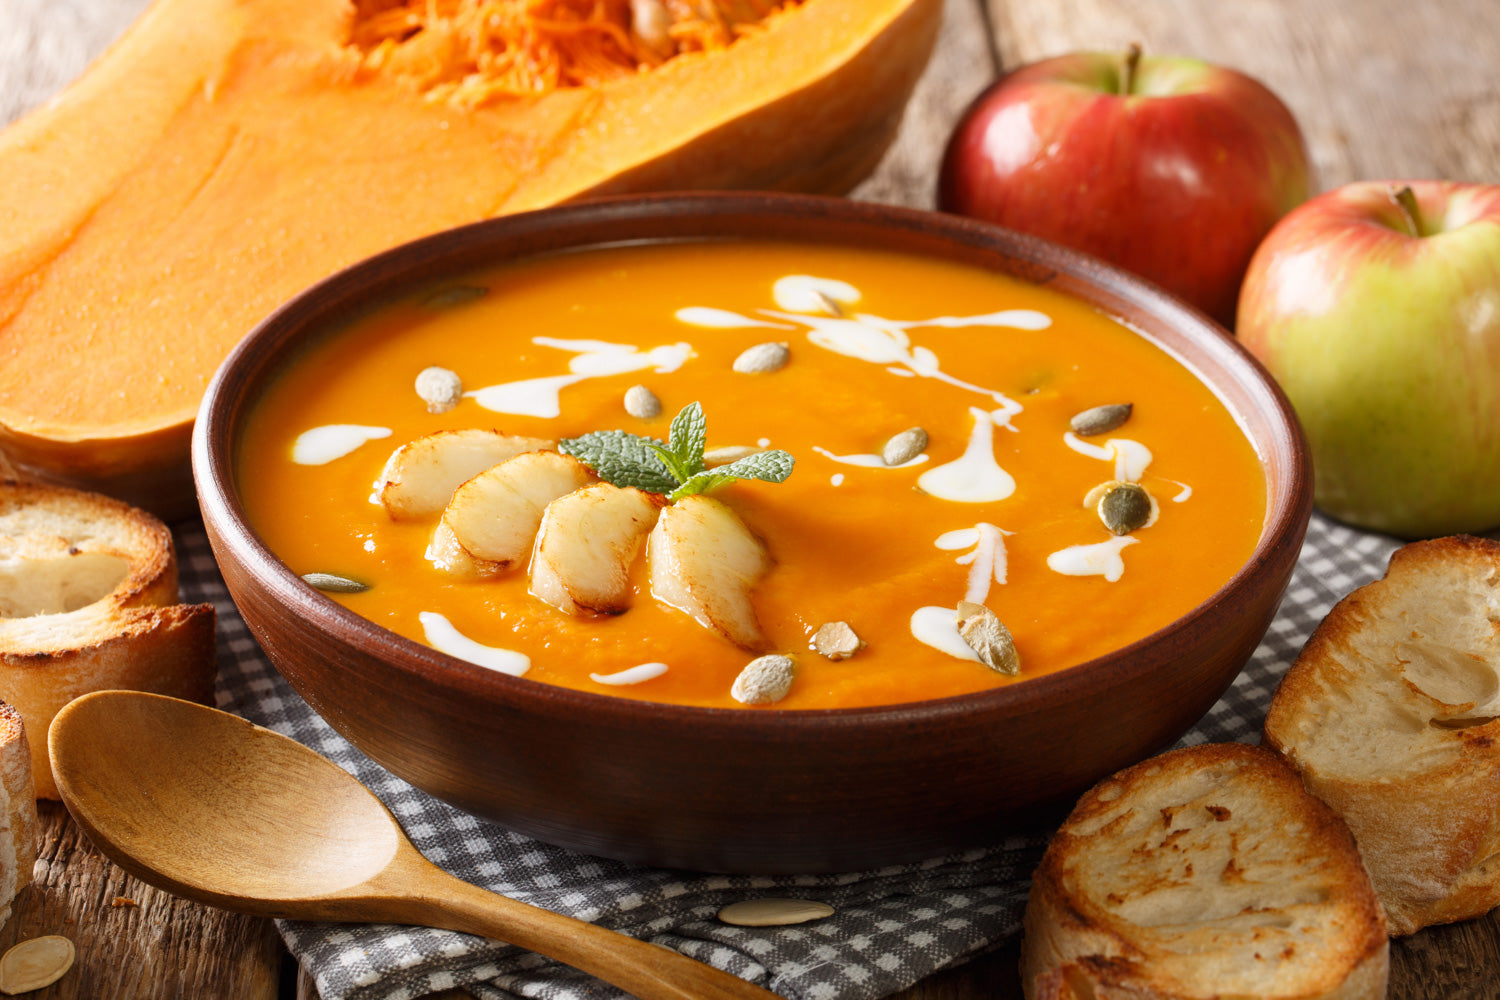 Curried Pumpkin and Apple Soup